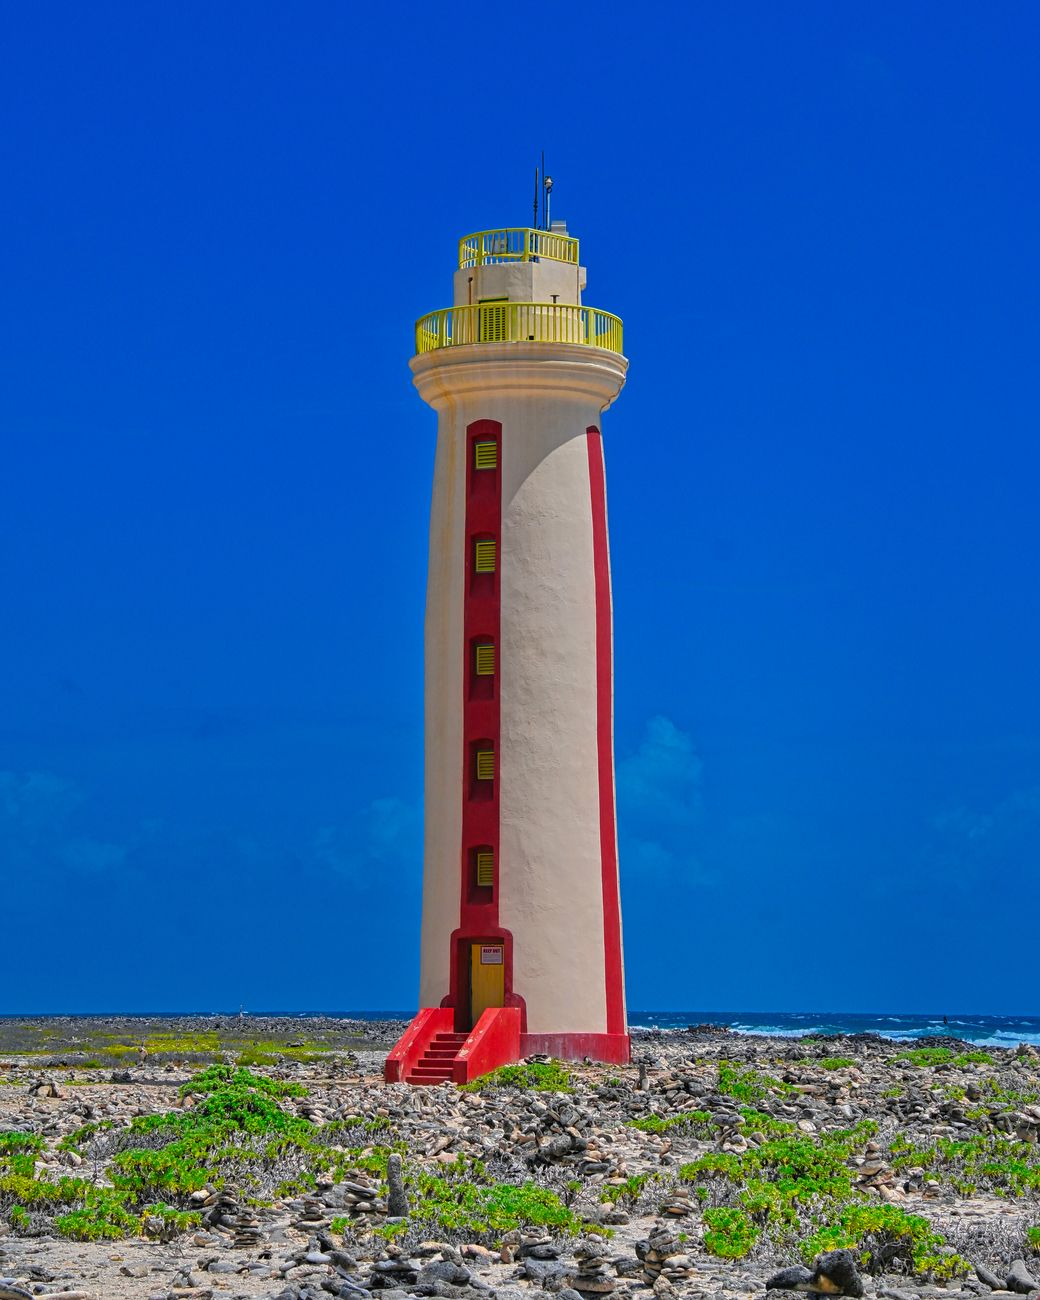 One of 3 active lighthouses on the island of Bonaire.